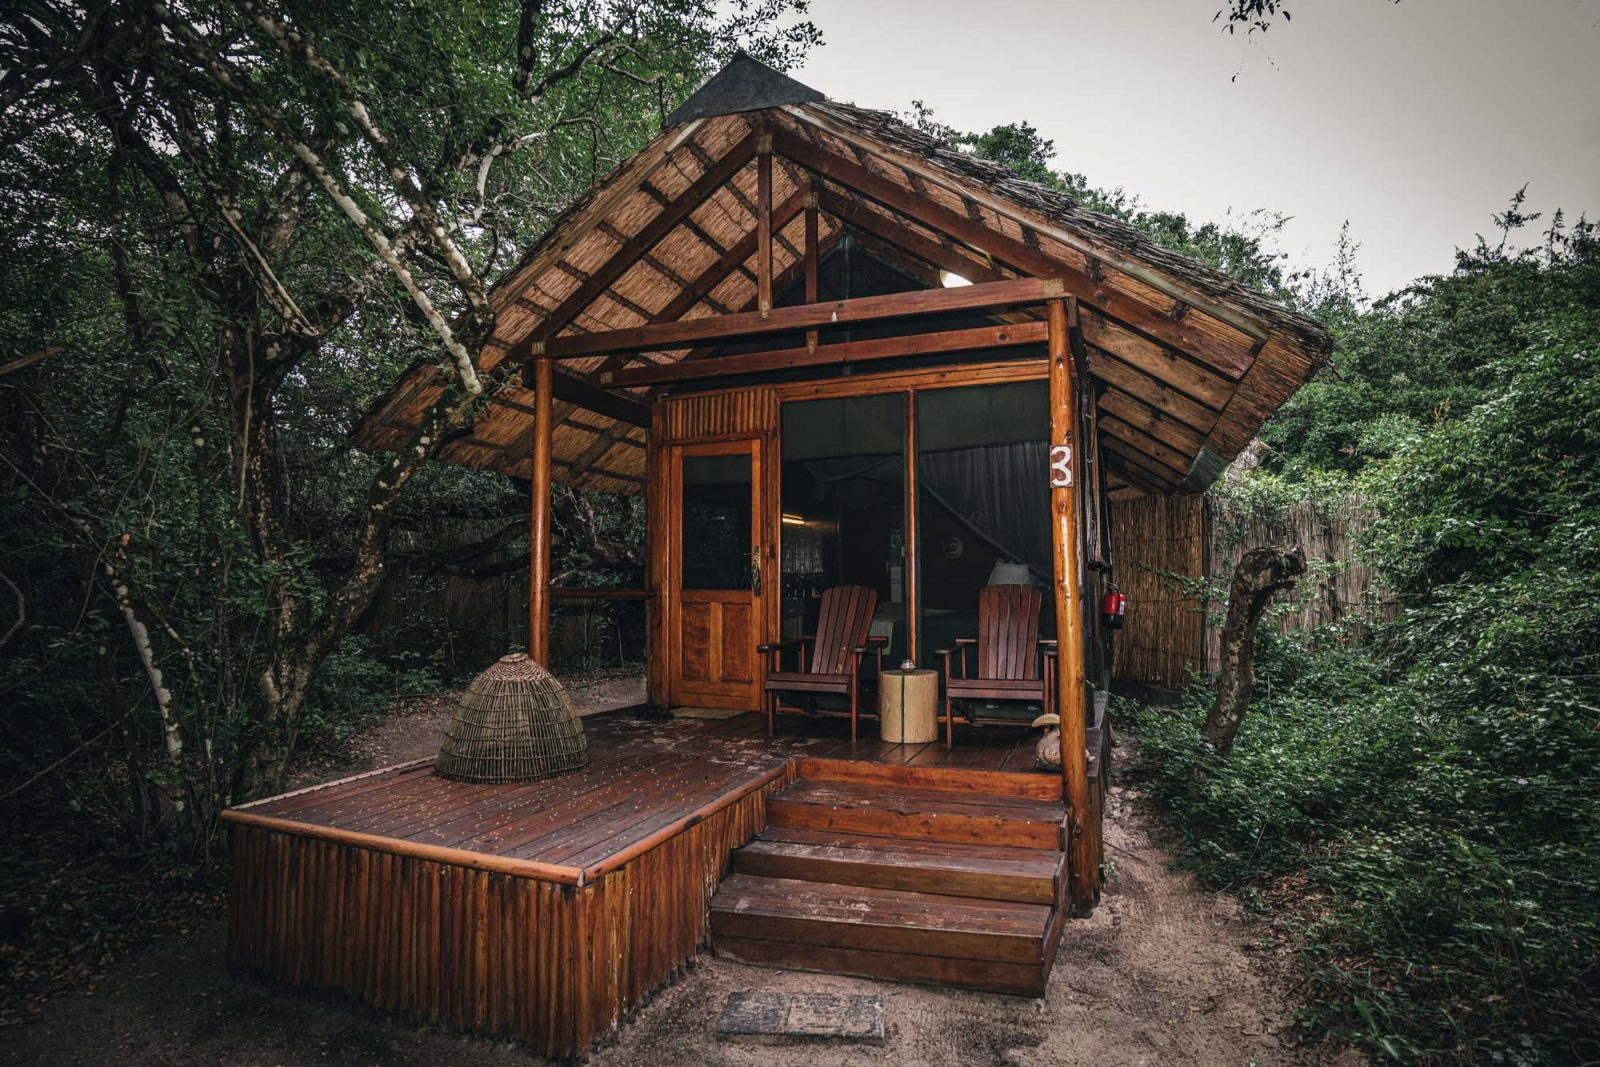 Kosi Forest Lodge, Kosi Bay, iSimangaliso Wetland Park, South Africa